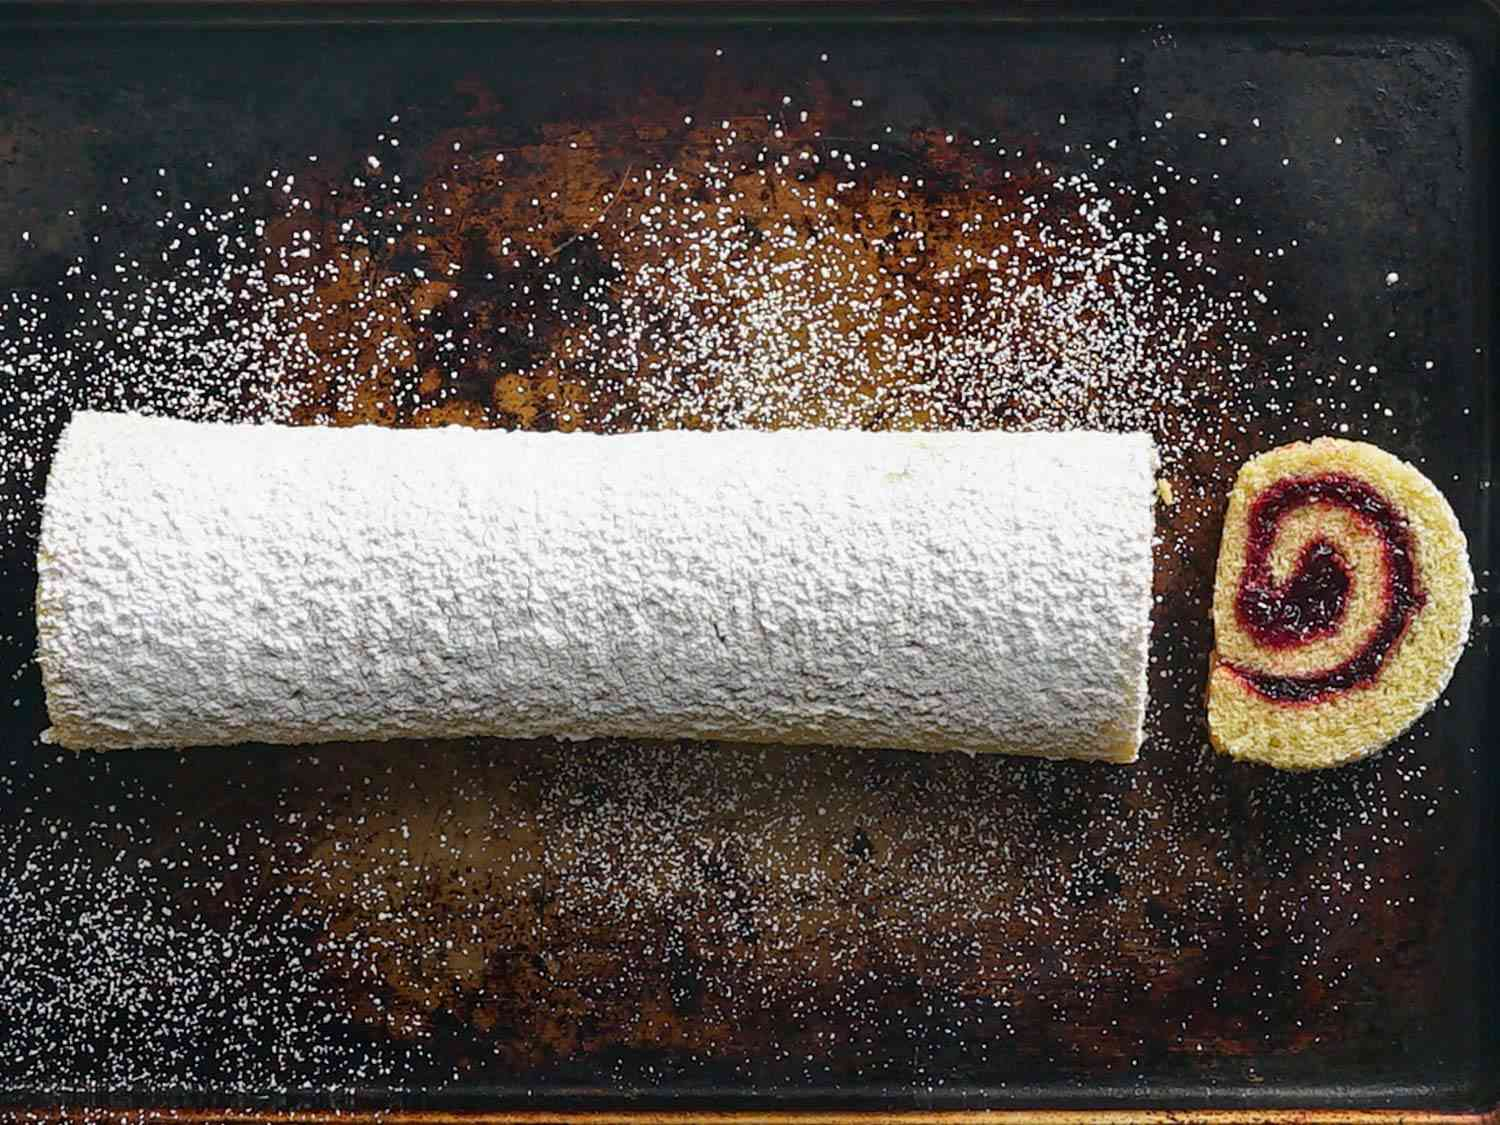 overhead shot of a sliced jelly roll dusted in powdered sugar